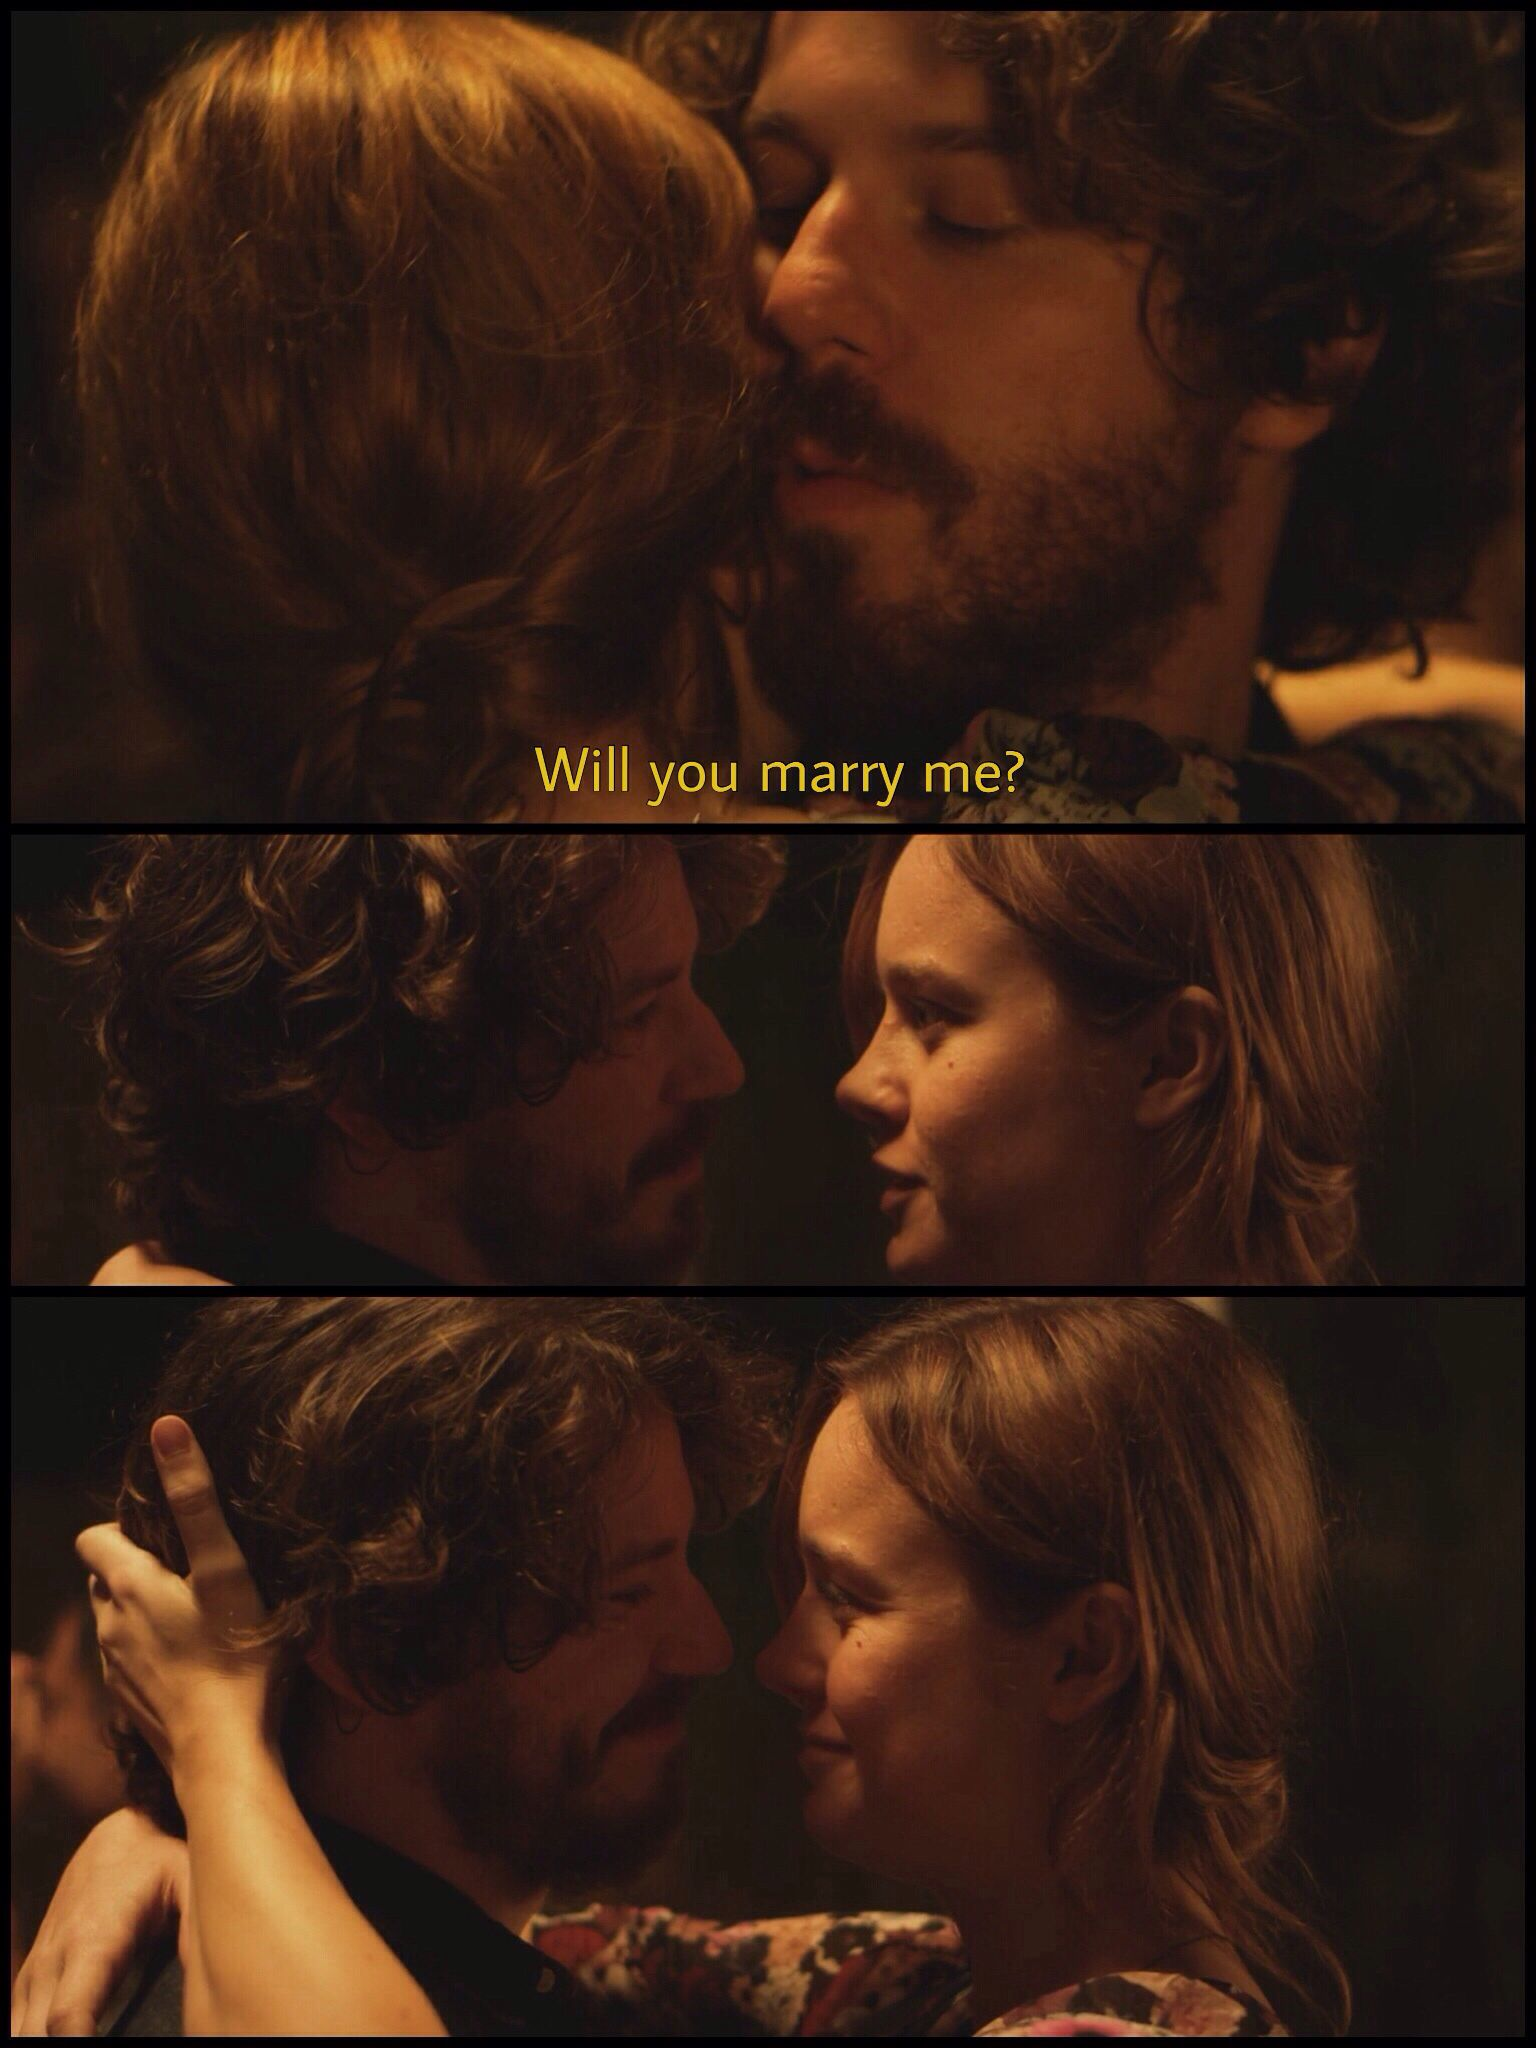 Short Term 12 | Movies in 2019 | Short term 12, Movie quotes